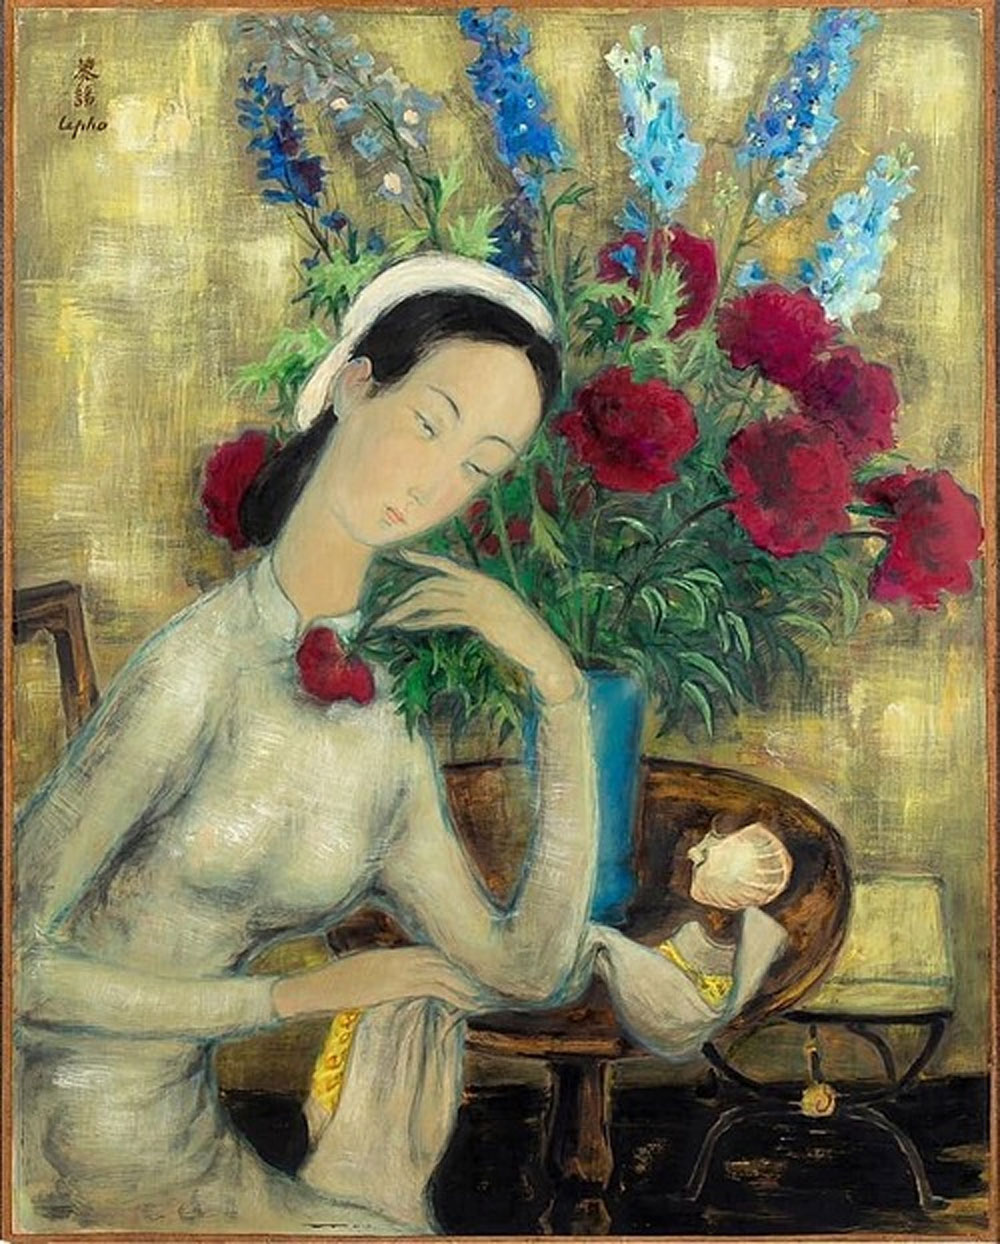 Vietnamese painting, Young Girl With Peonies, Vietnamese artist Le Pho, French auction, exceptional work, long bidding battle